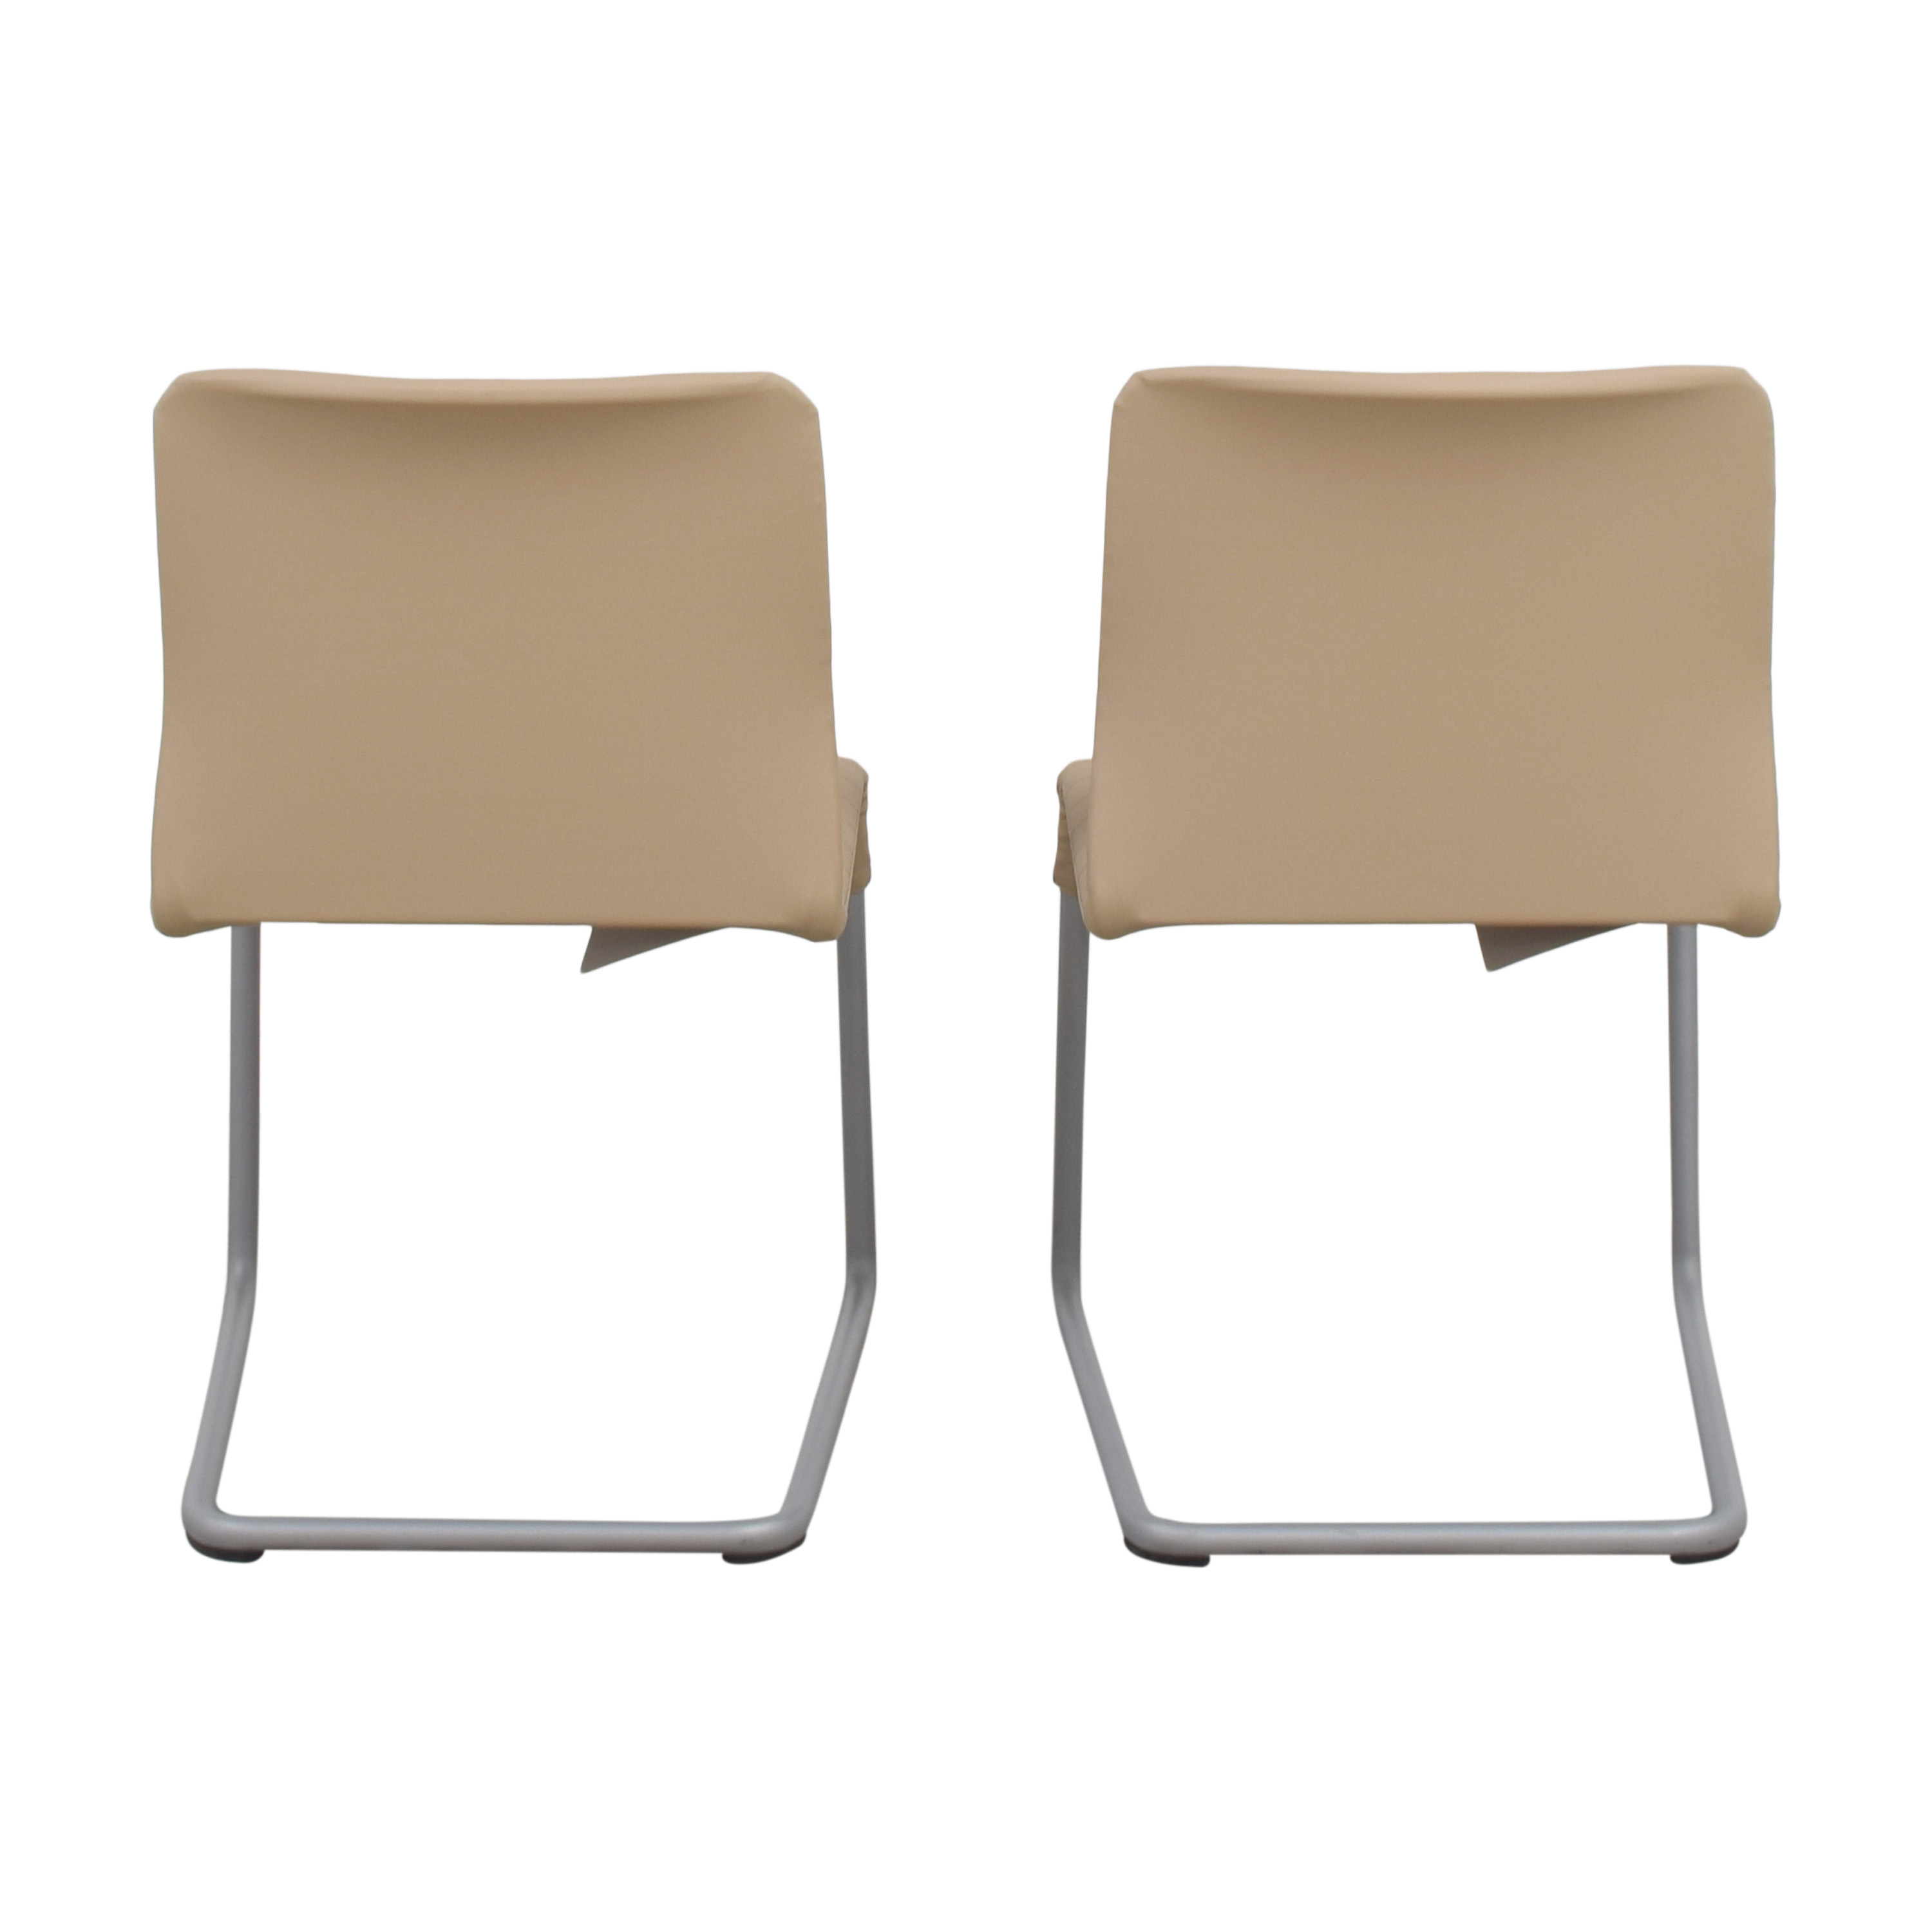 buy Global Furniture Group Global Furniture Group Lite Cantilever Frame Side Chairs online